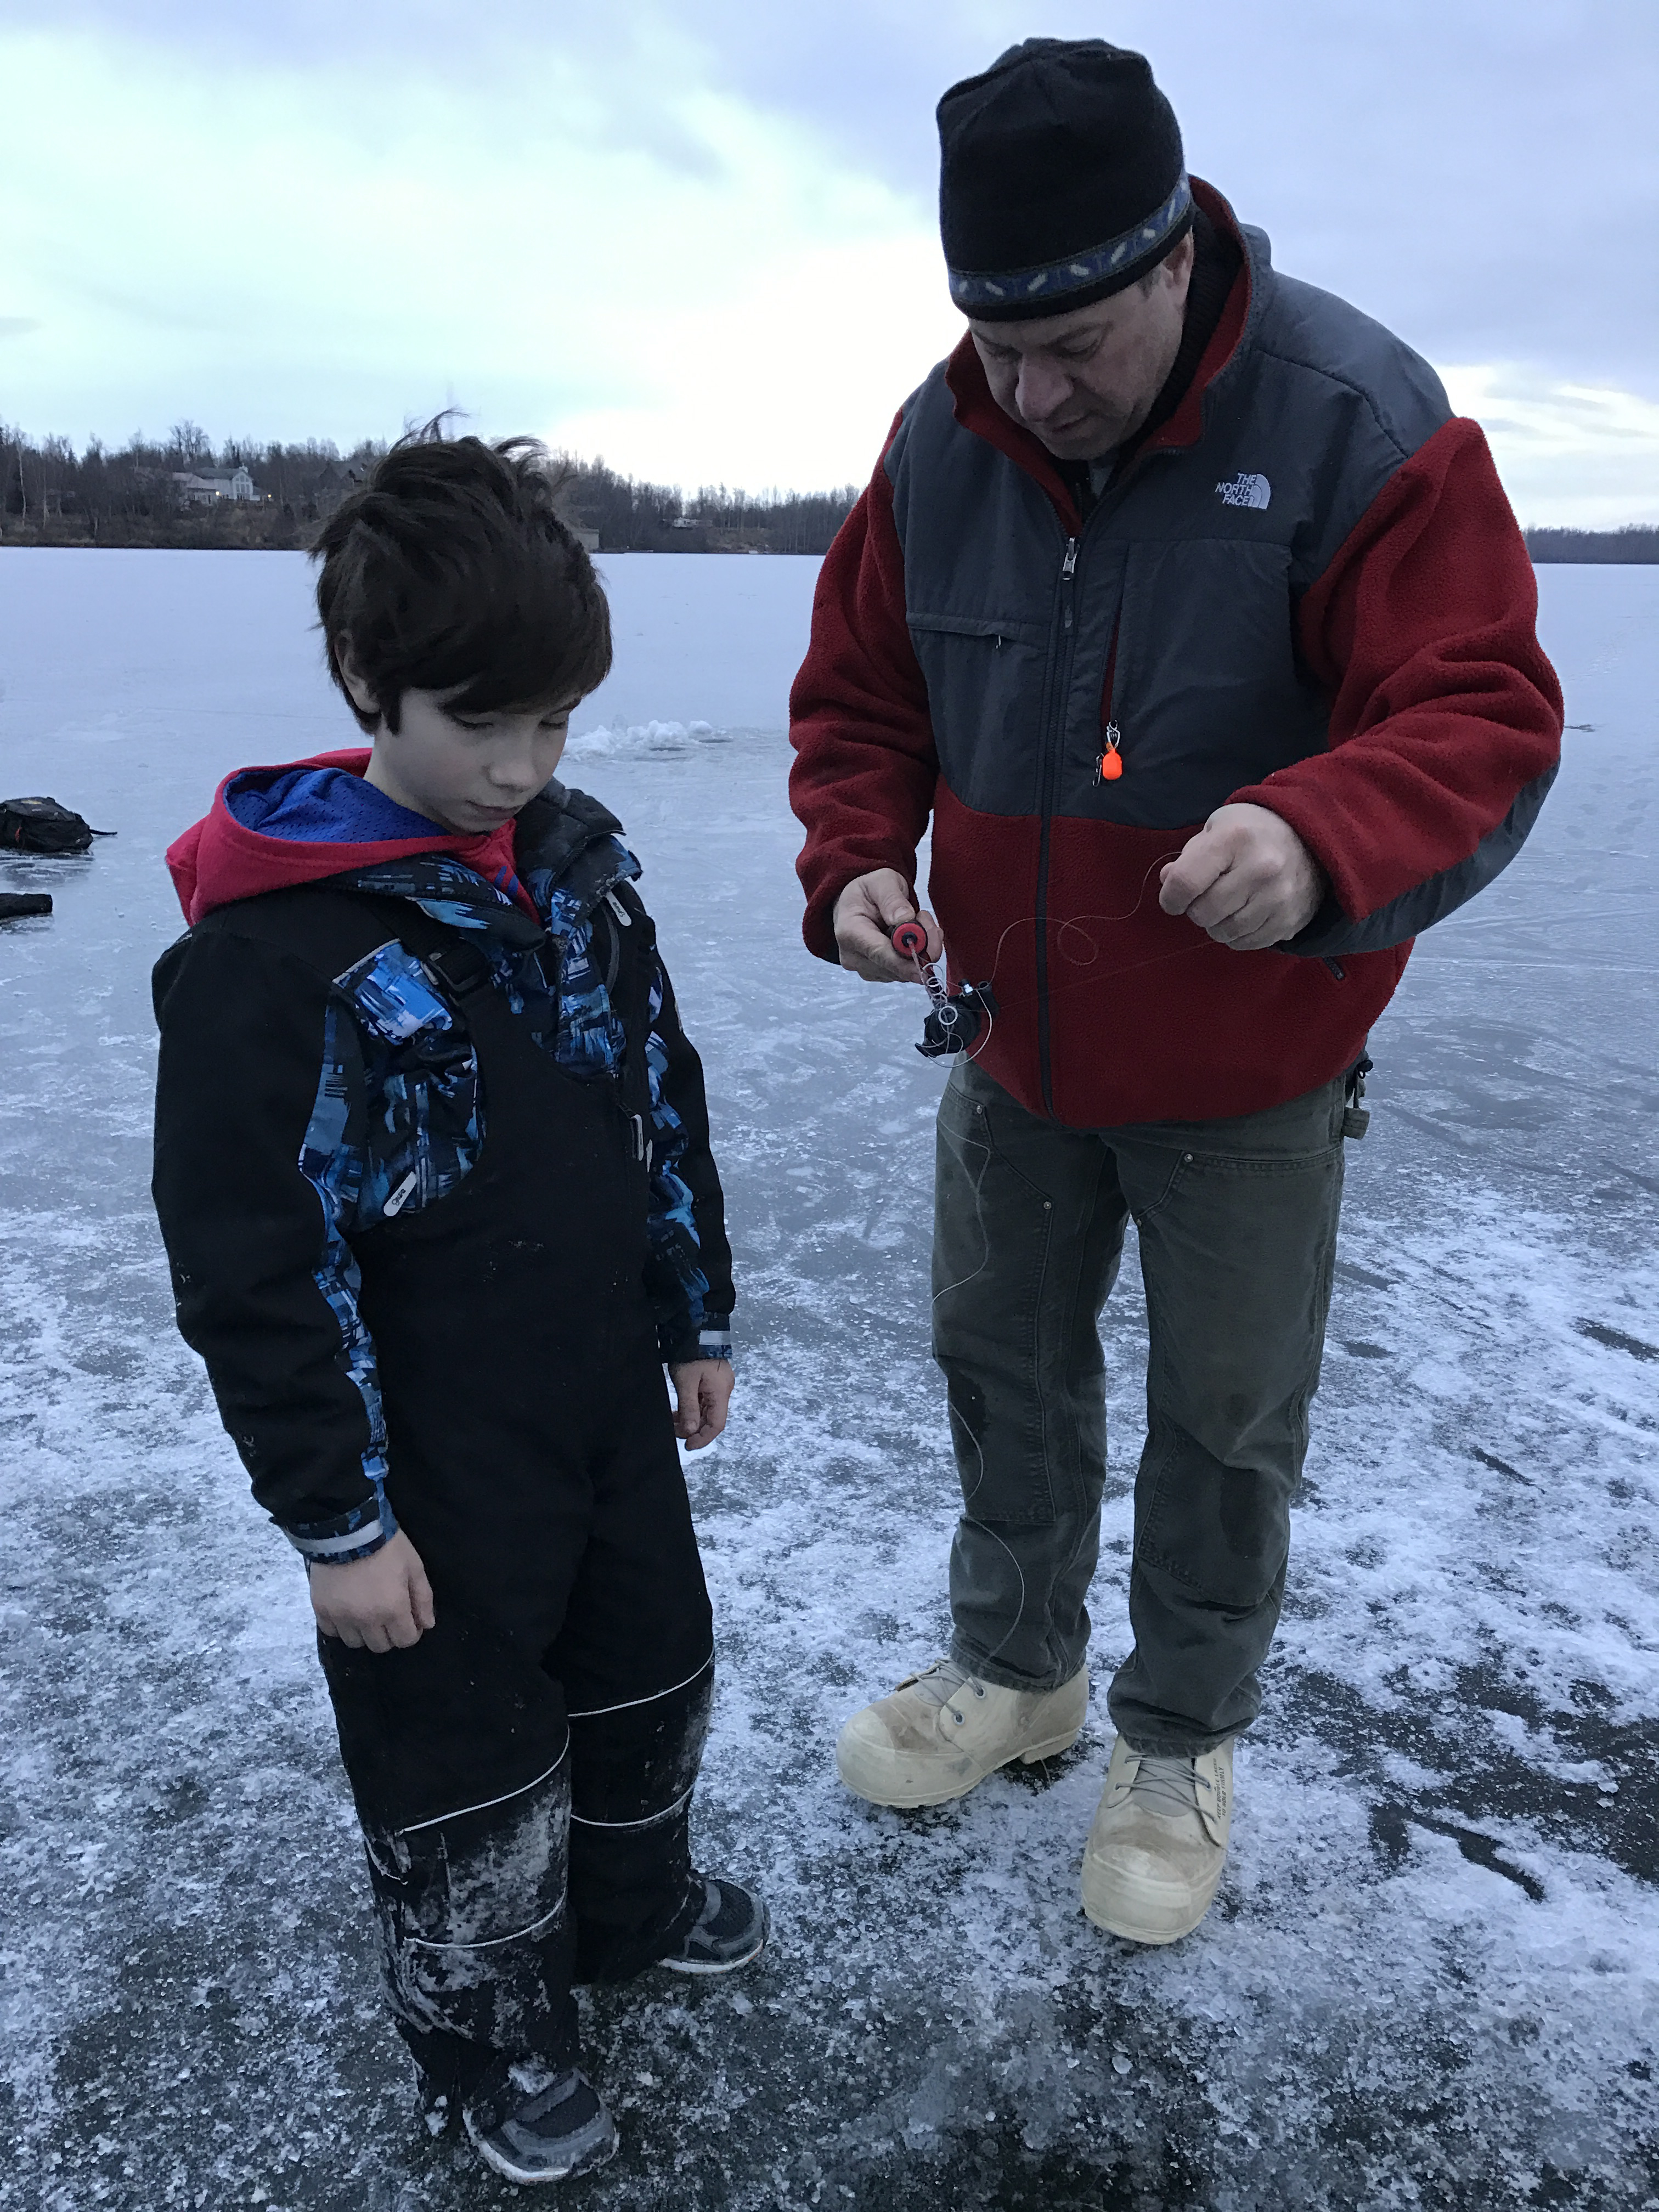 Winter running and winter fun for Go ice fish